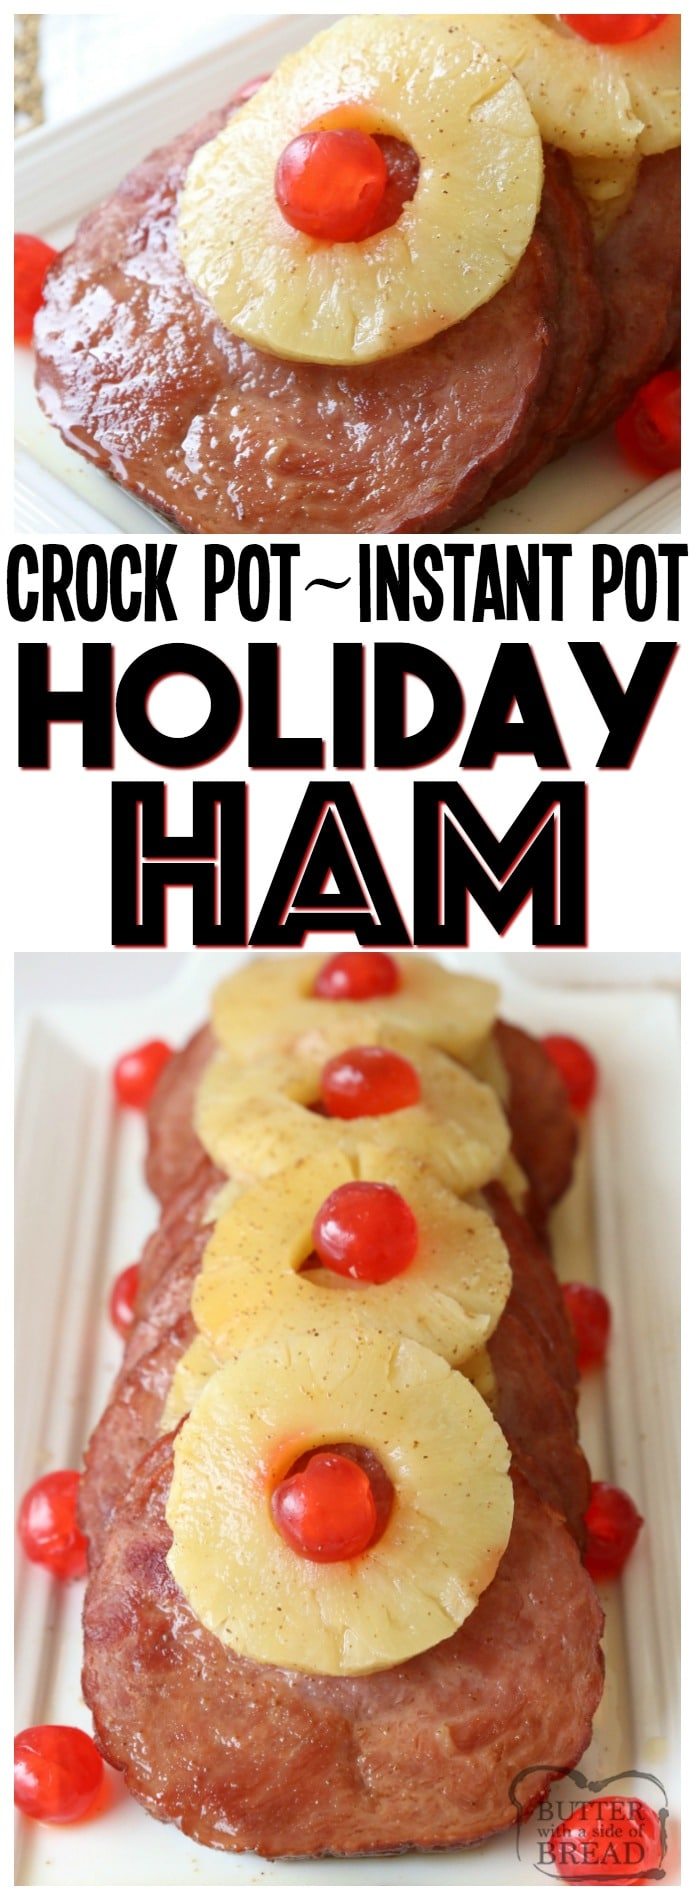 Crock Pot Ham is my favorite holiday ham recipe! Just 4 ingredients and can be made in the crockpot or Instant Pot. Brown sugar and pineapple provide a sweet, tangy flavor to the ham. Quick & easy ham recipe that takes just minutes to prepare and yields tender, flavorful and juicy ham.Best Ham Recipe ever! Crock Pot Ham or Instant Pot Ham from Butter With A Side of Bread #crockpot #slowcooker #ham #InstantPot #holiday #recipe #food